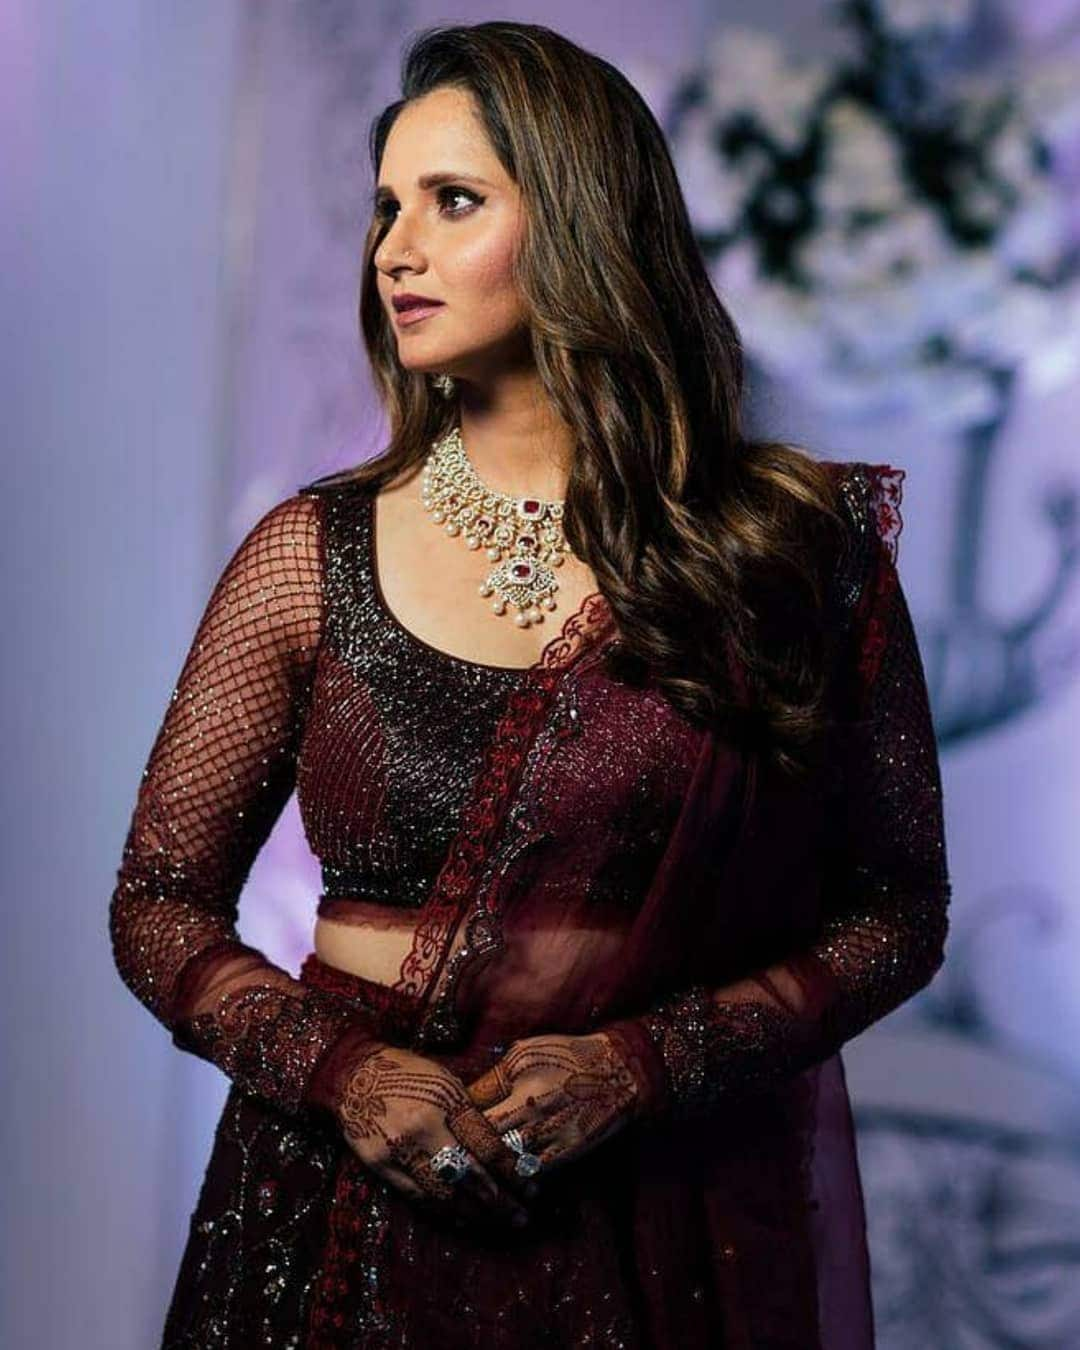 Sania Mirza Dazzles in this Dark Maroon Dress